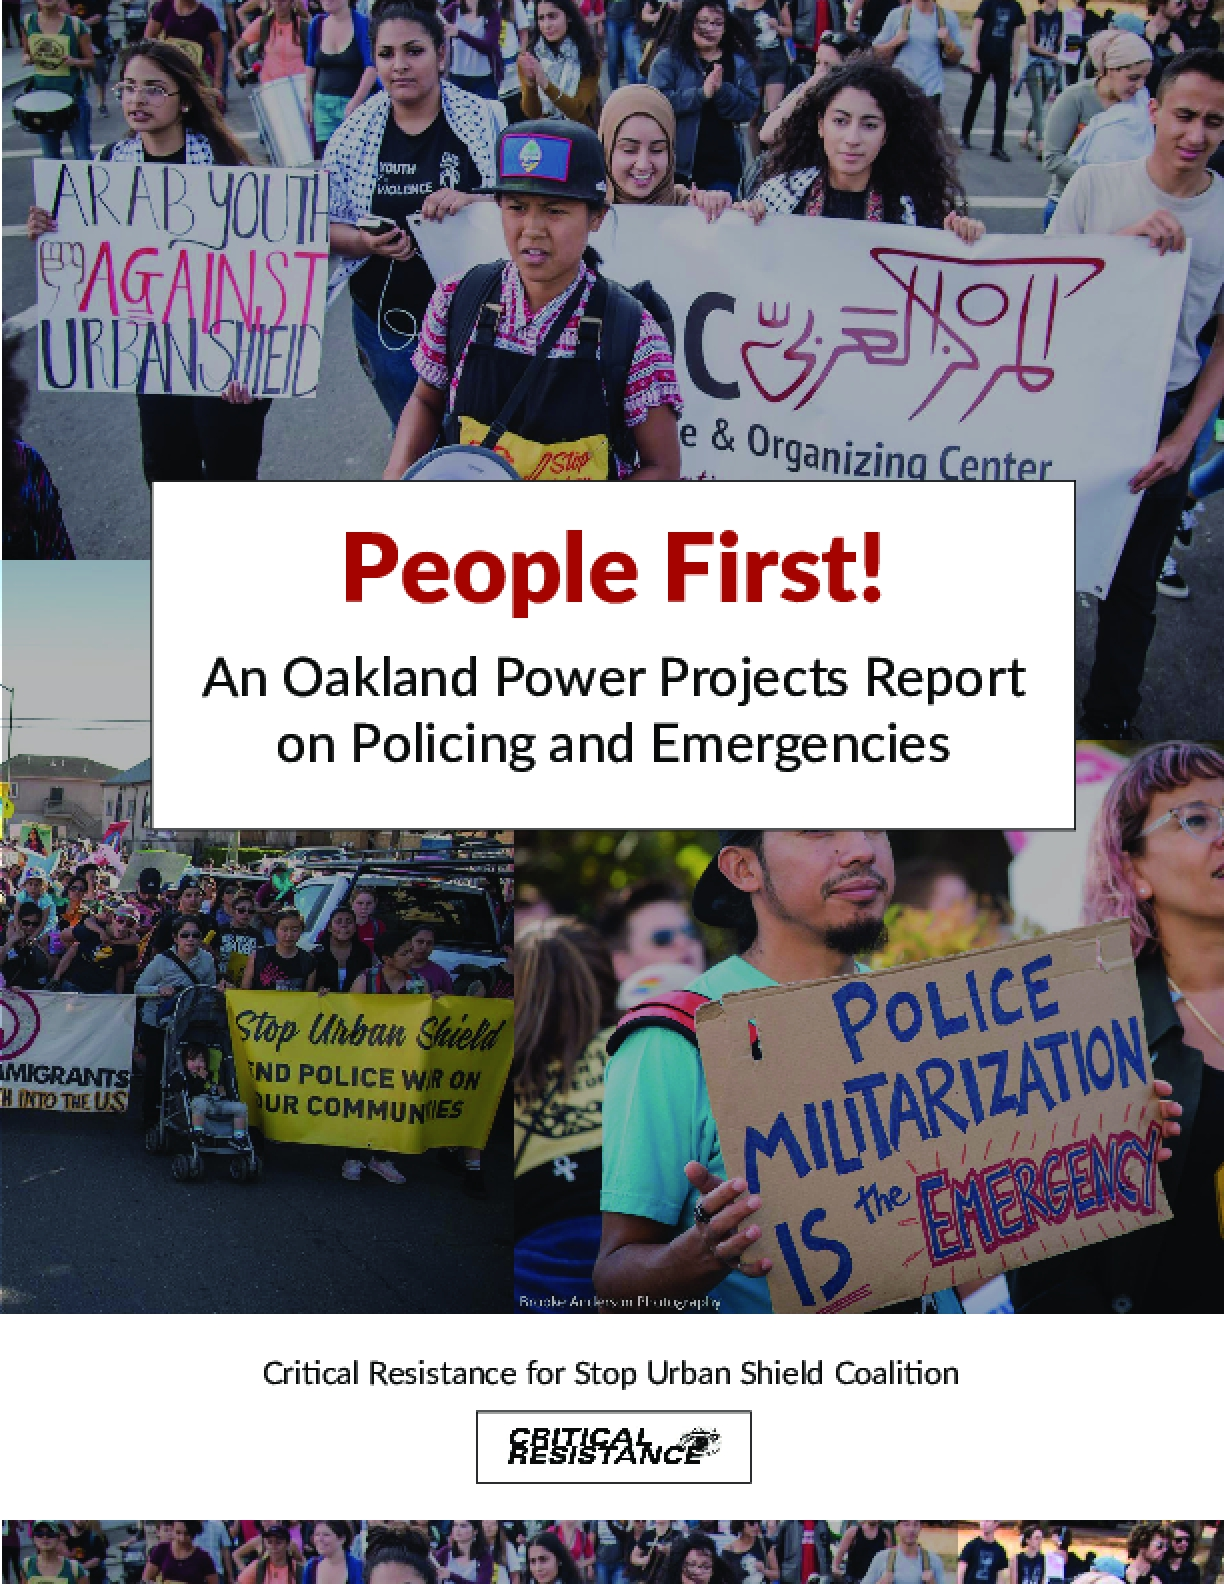 People First! An Oakland Power Projects Report on Policing and Emergencies